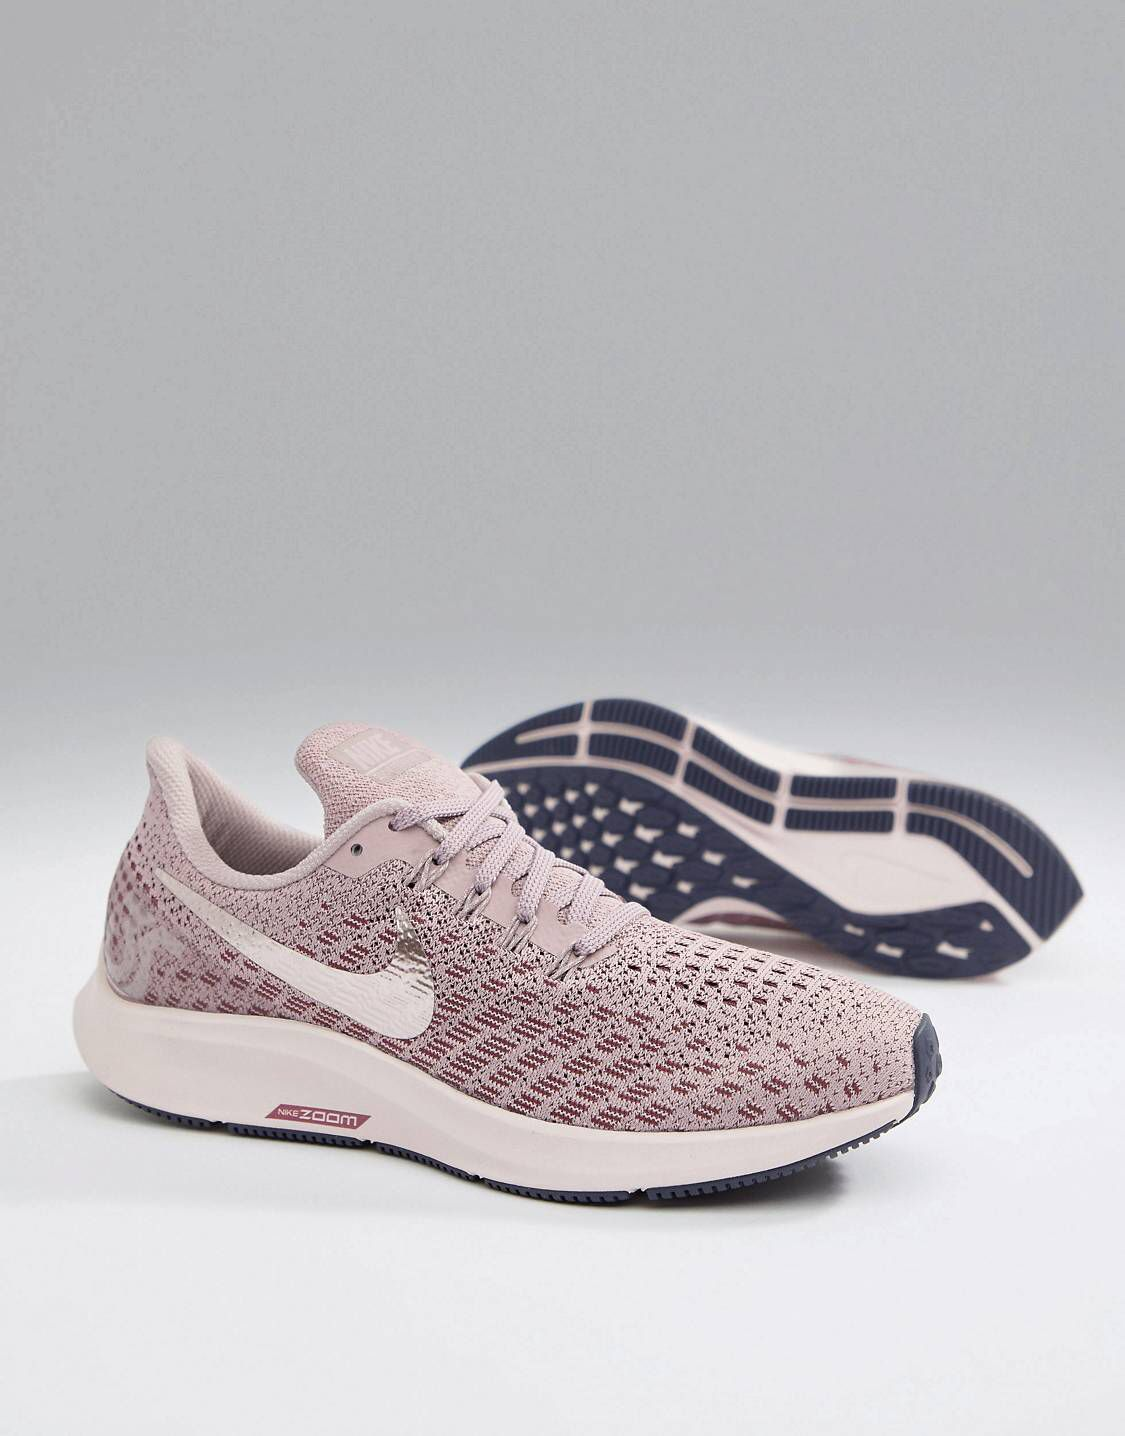 new style 0a620 af9a7 Nike Running Air Zoom Pegasus 35 Trainers Rose With Metallic ...